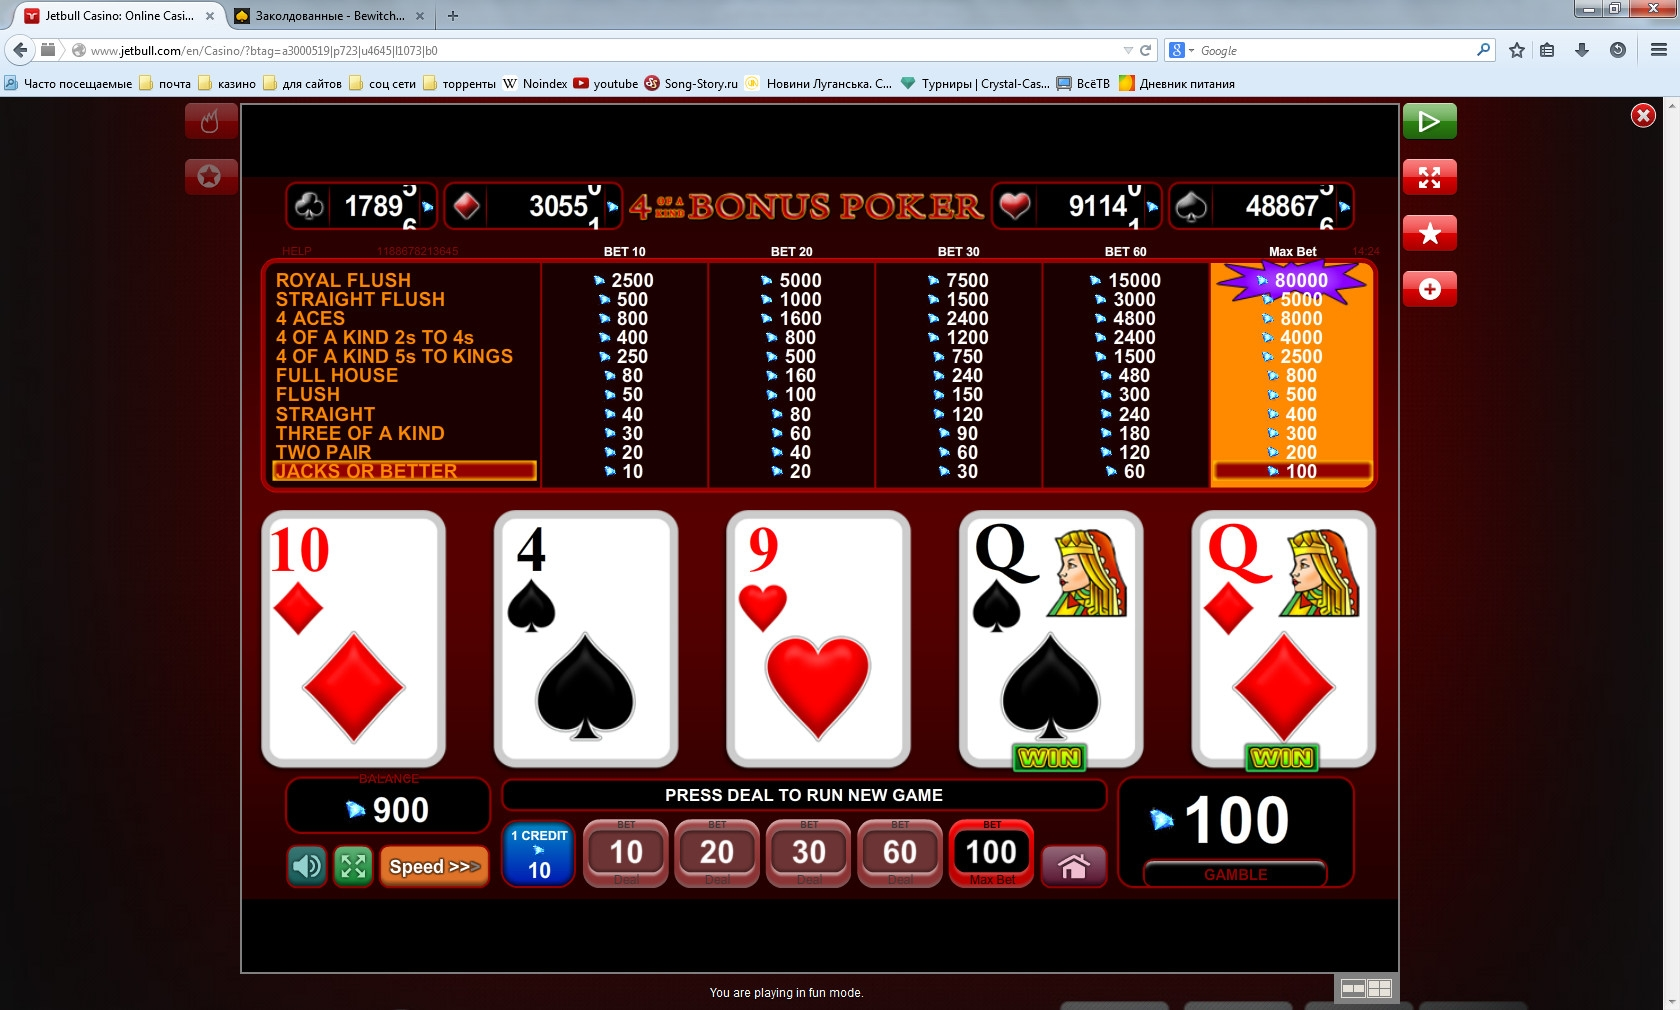 online casino reviews poker 4 of a kind